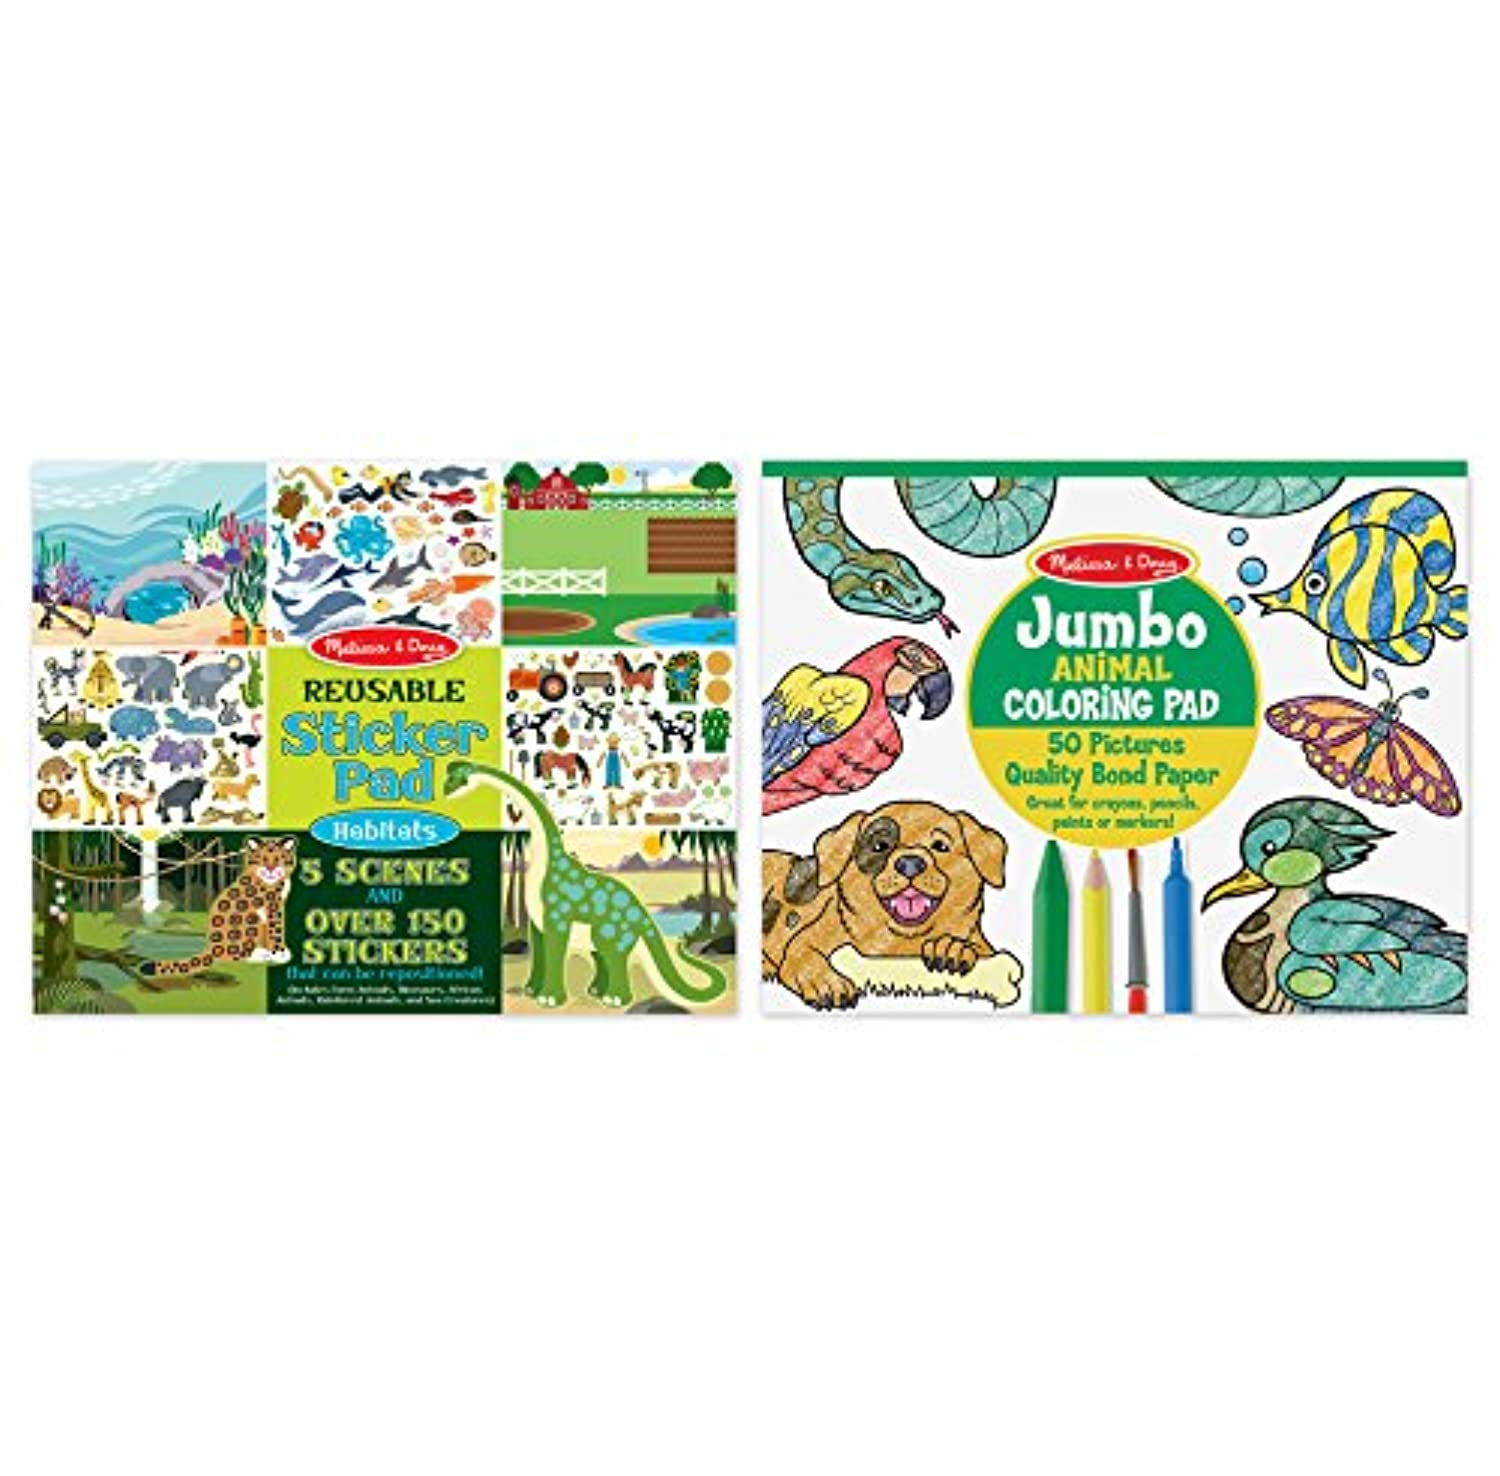 Melissa & Doug Reusable Sticker Pad – Habitats 9921